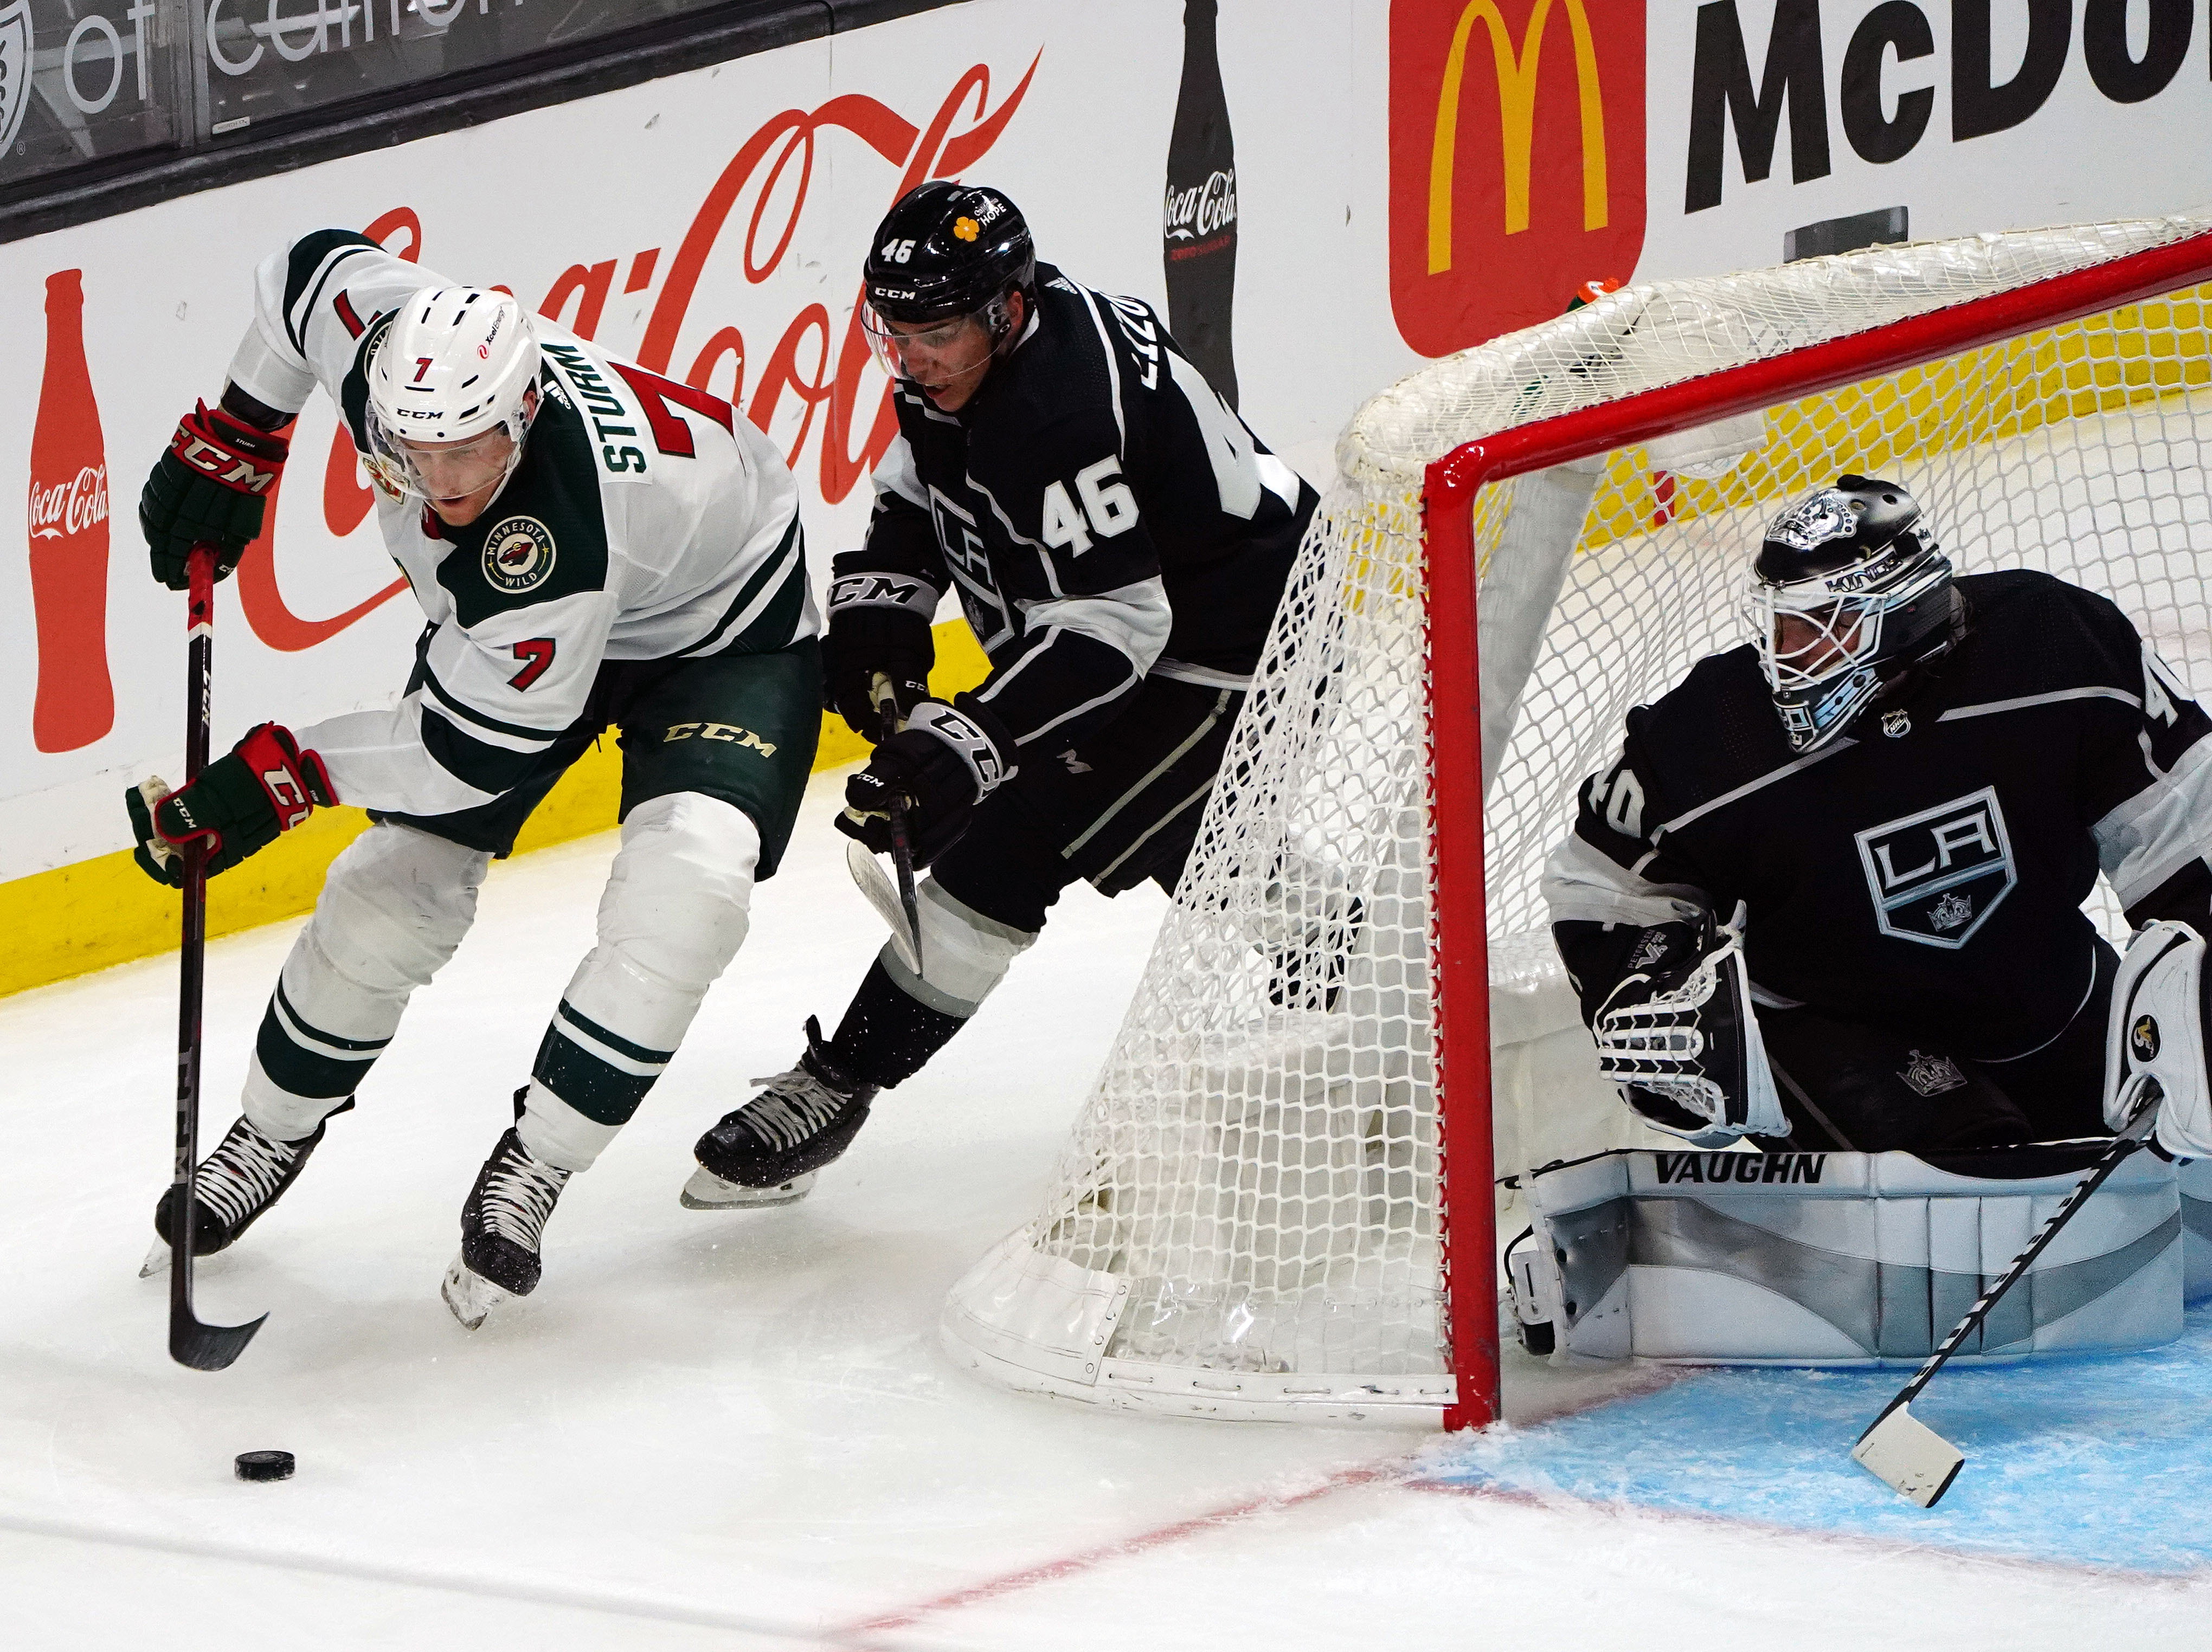 Game Preview: Minnesota Wild vs. Los Angeles Kings 10/16/21 @ 9:00PM CST at Staples Center